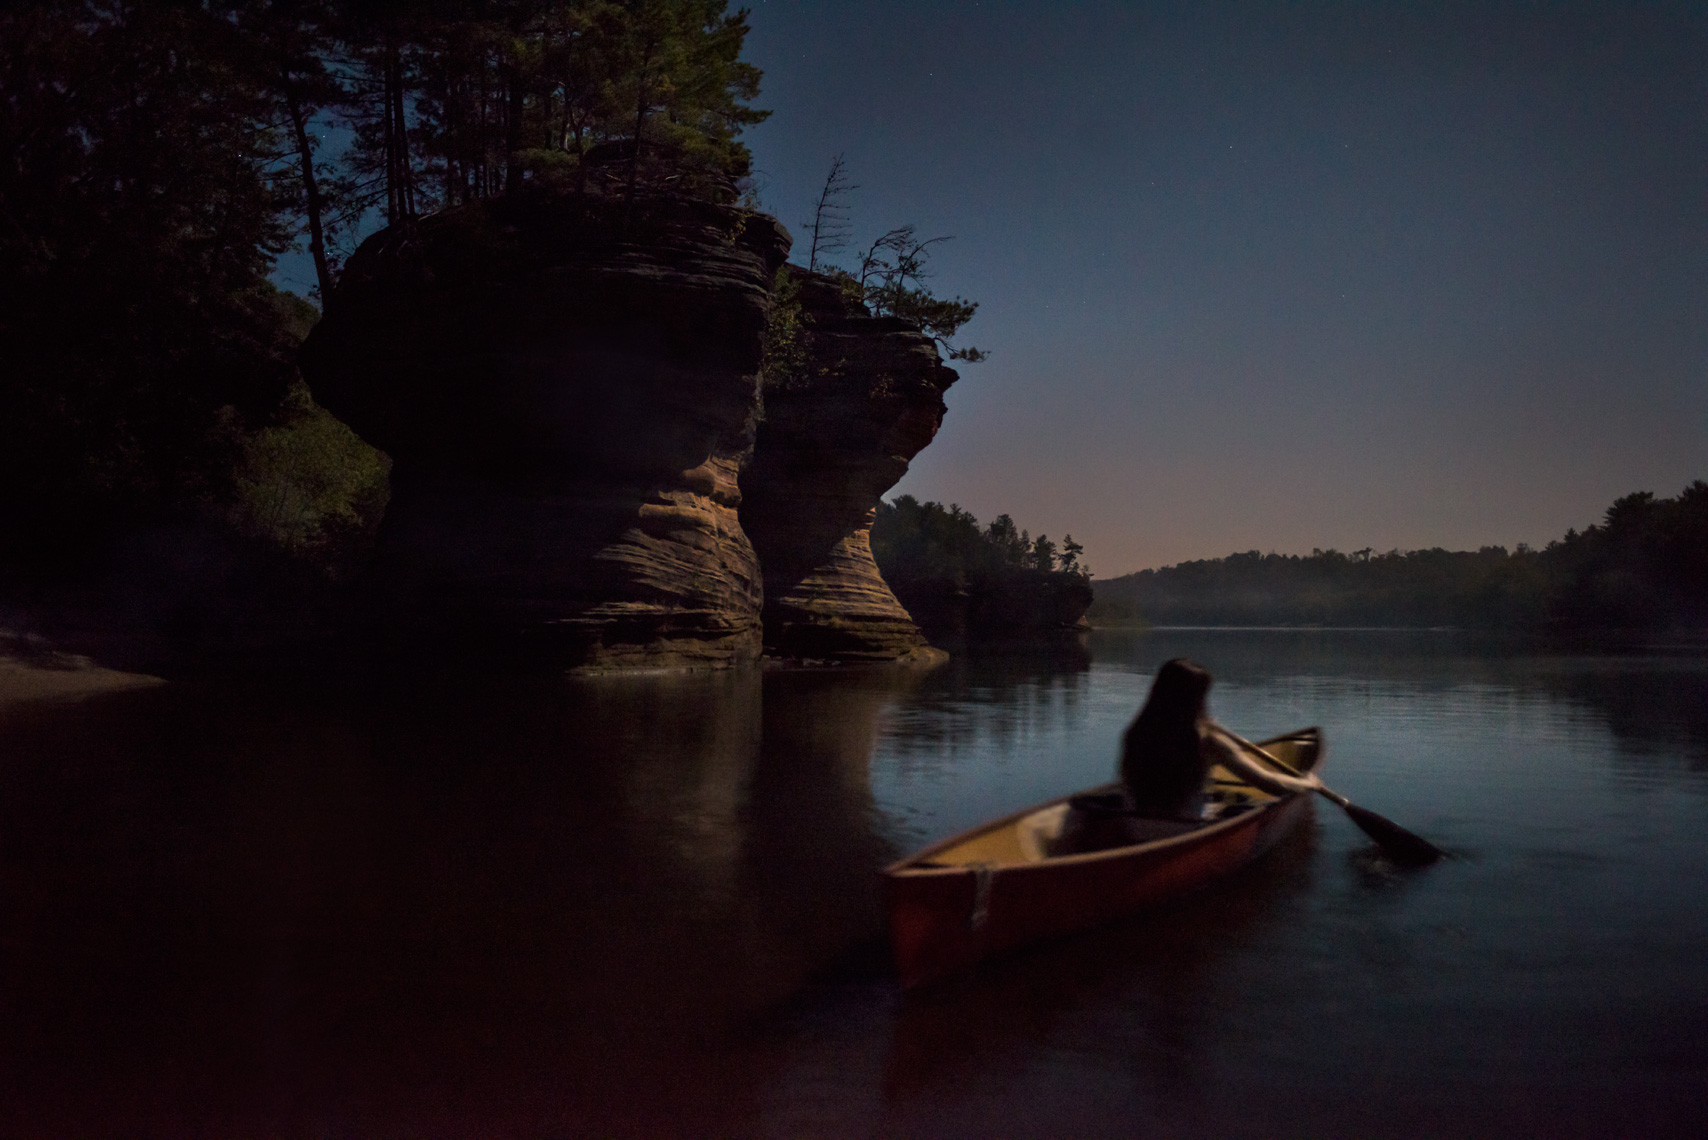 River-Archive-Canoe-Moon